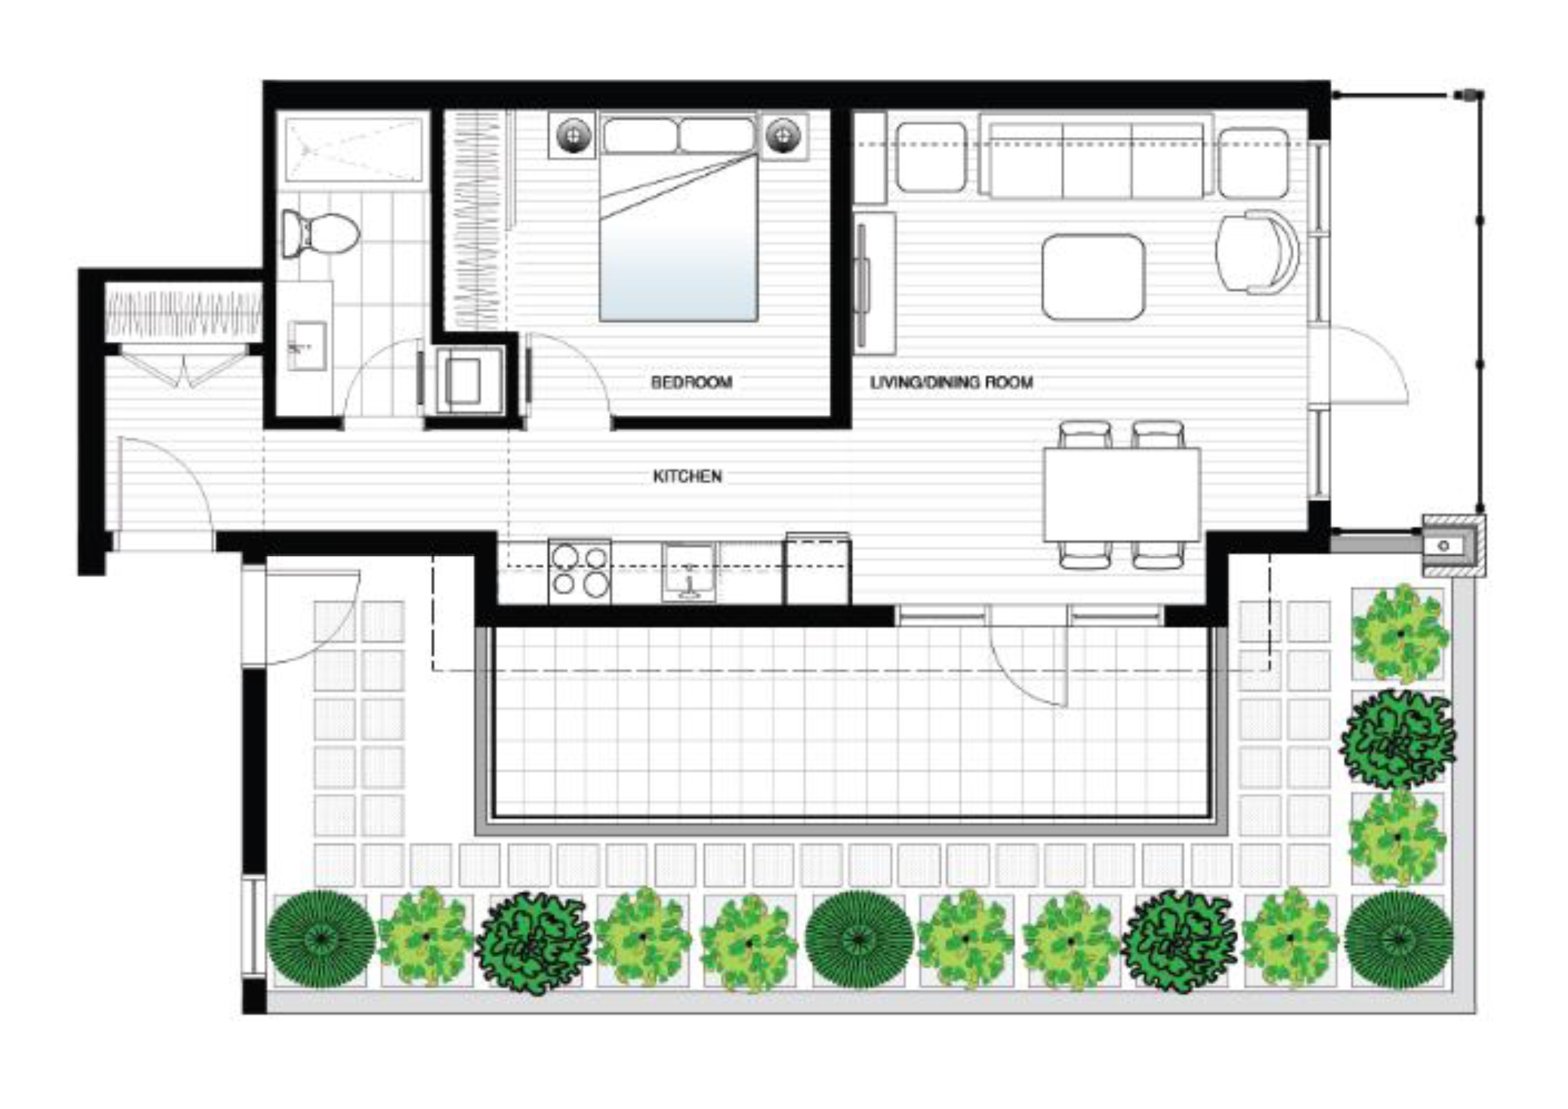 Floor Plan for CLEAN, COMFORTABLE and STYLISH  Brand New 1 BR in Chinatown  with Patio and Free Secure Parking